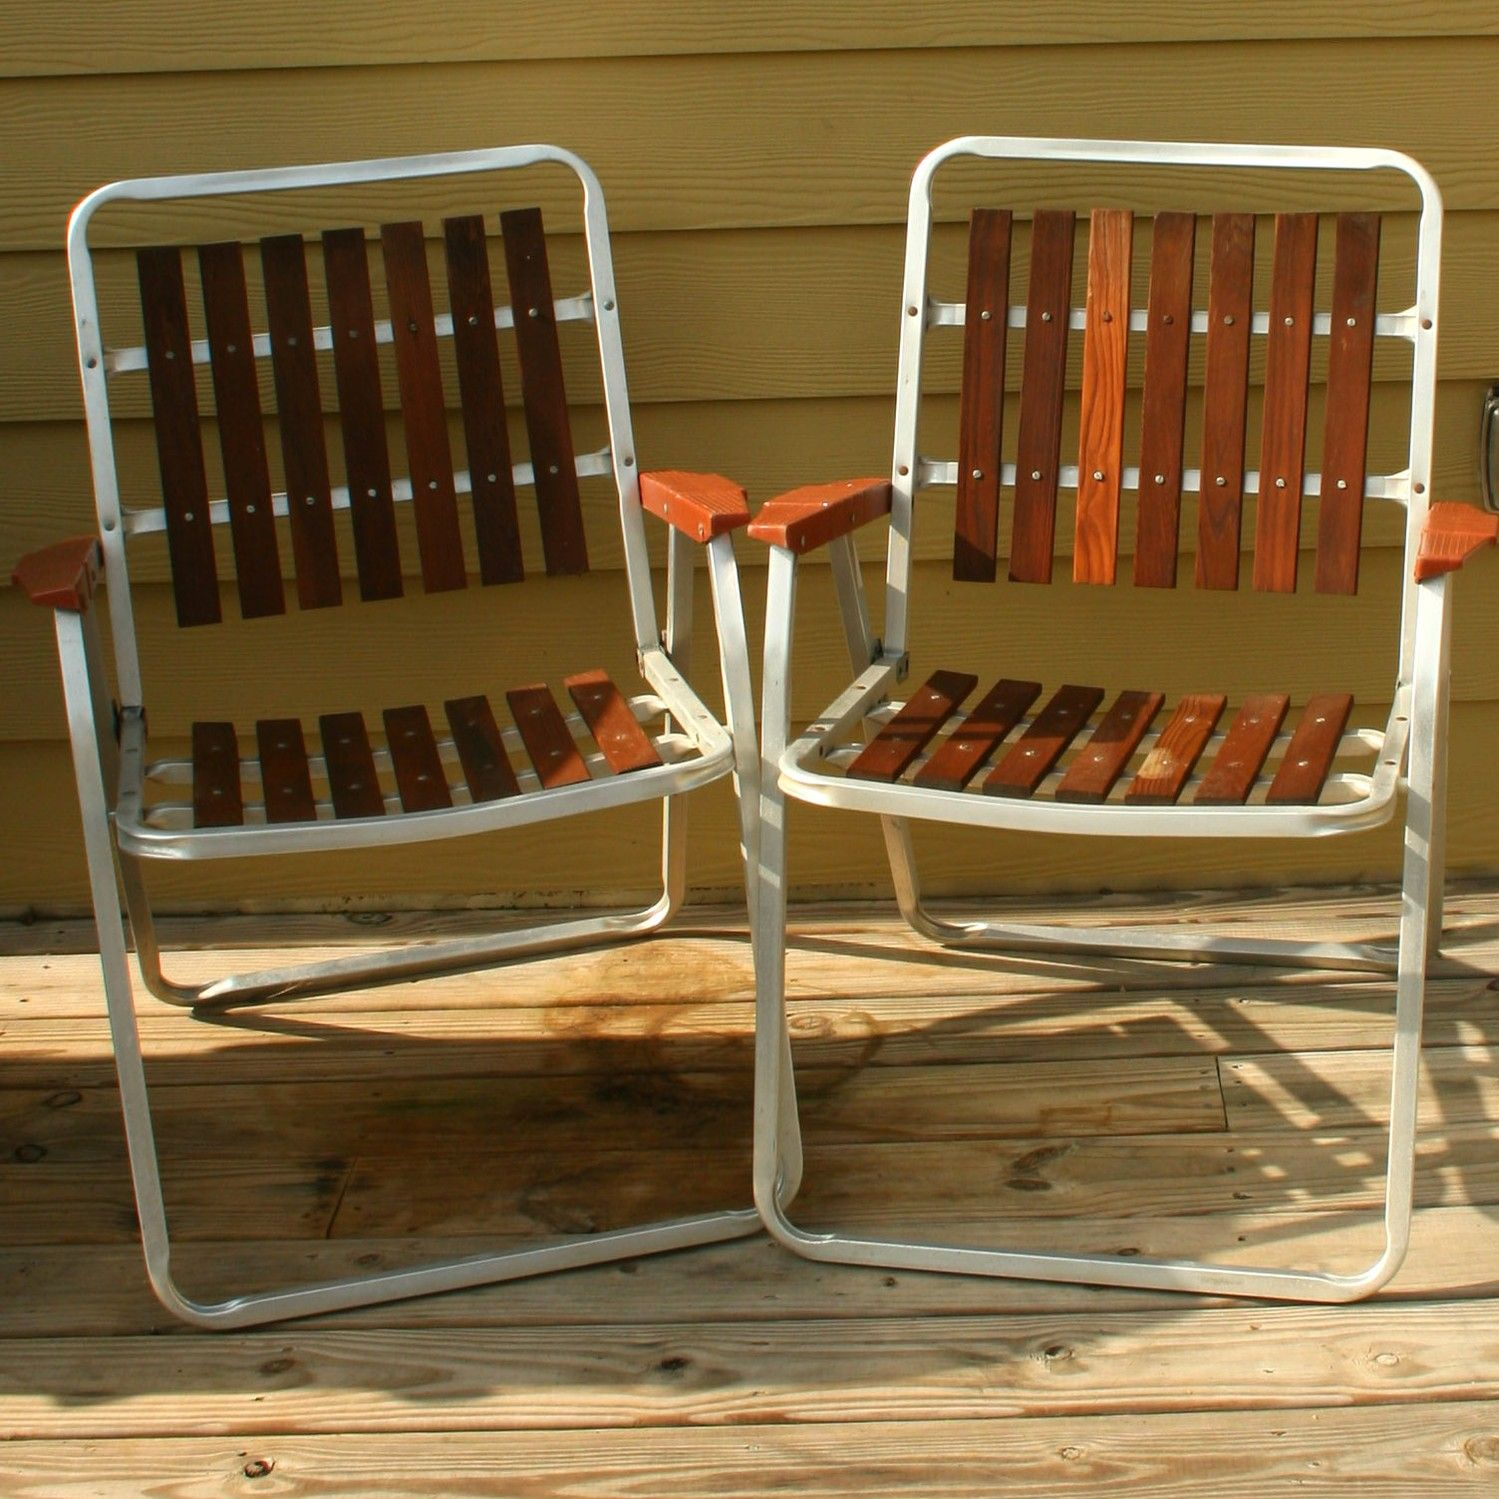 Vintage Folding Lawn Chairs. Mid Century Modern. Wooden